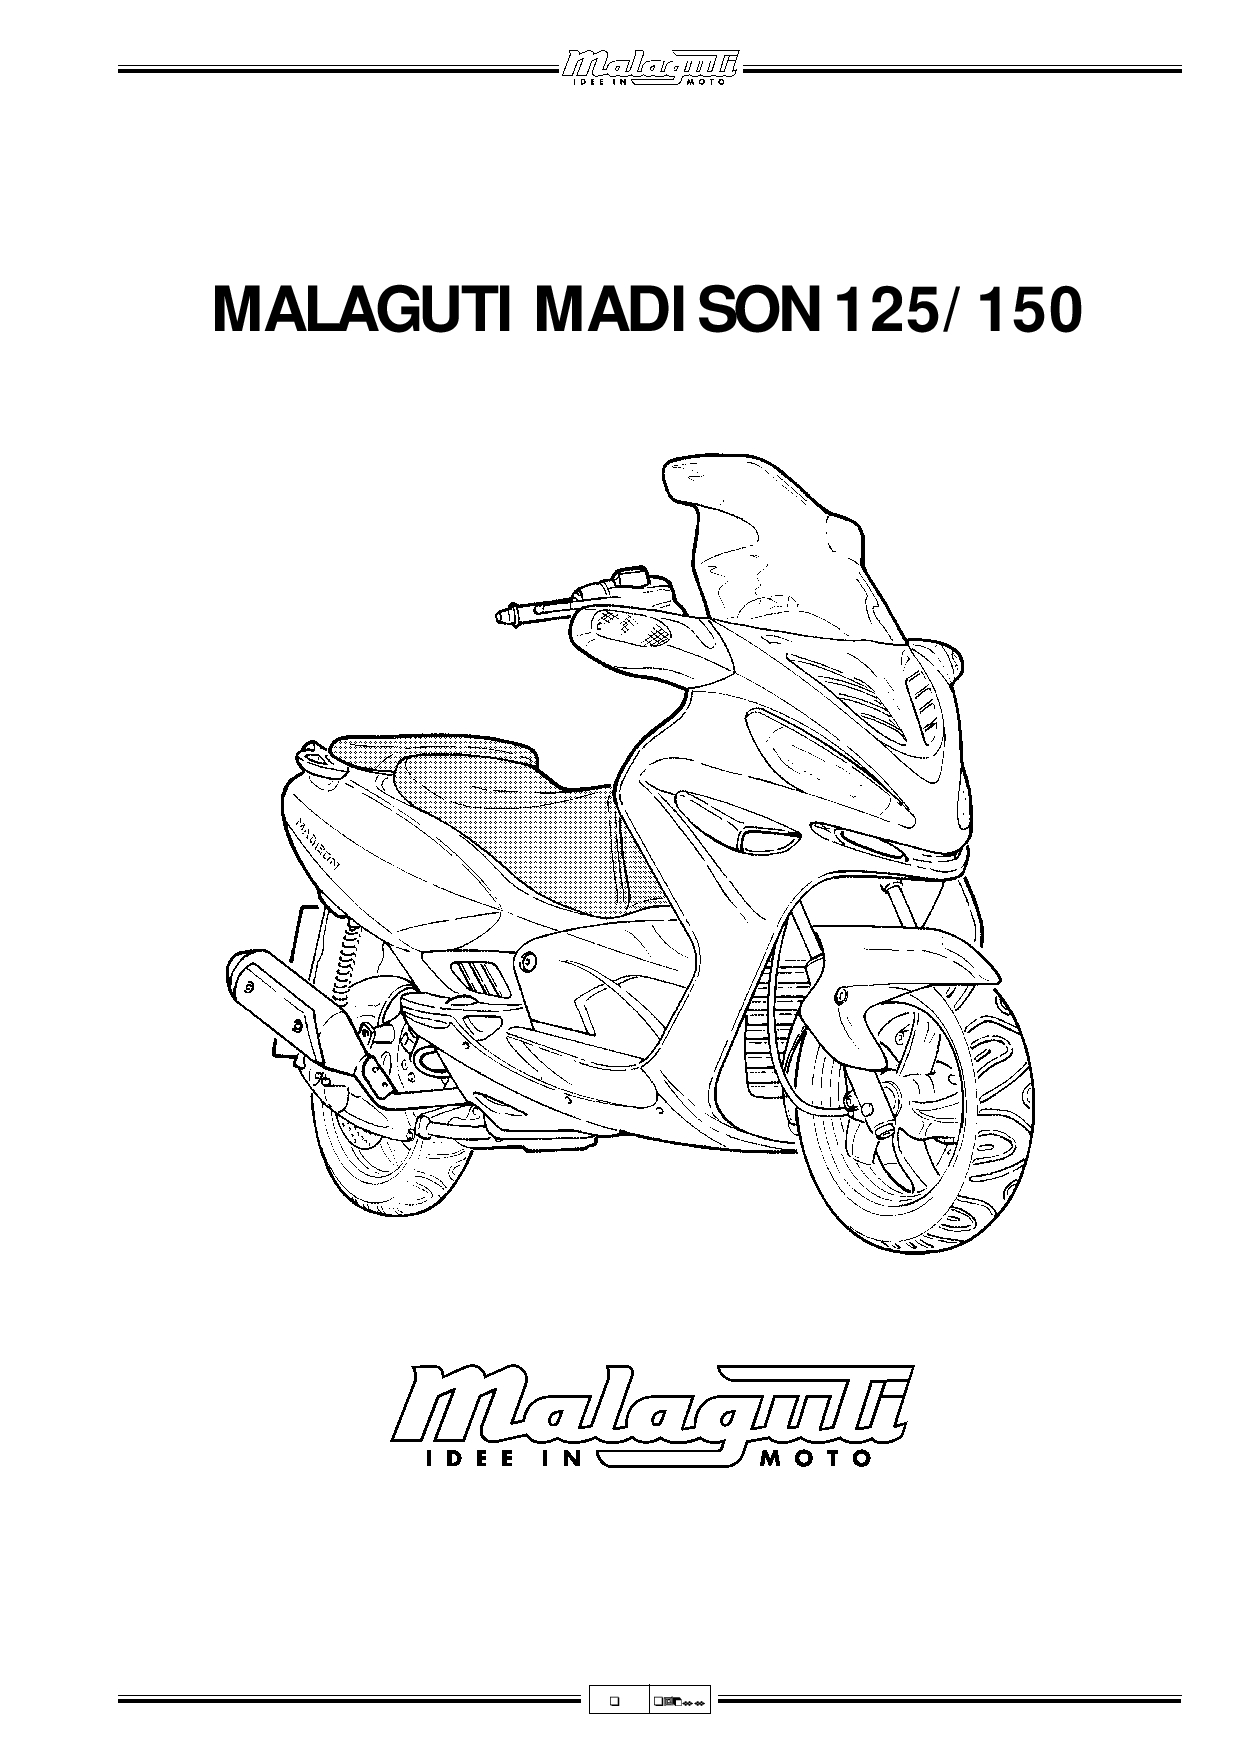 Malaguti Madison 125 150 Service Manual PDF Download